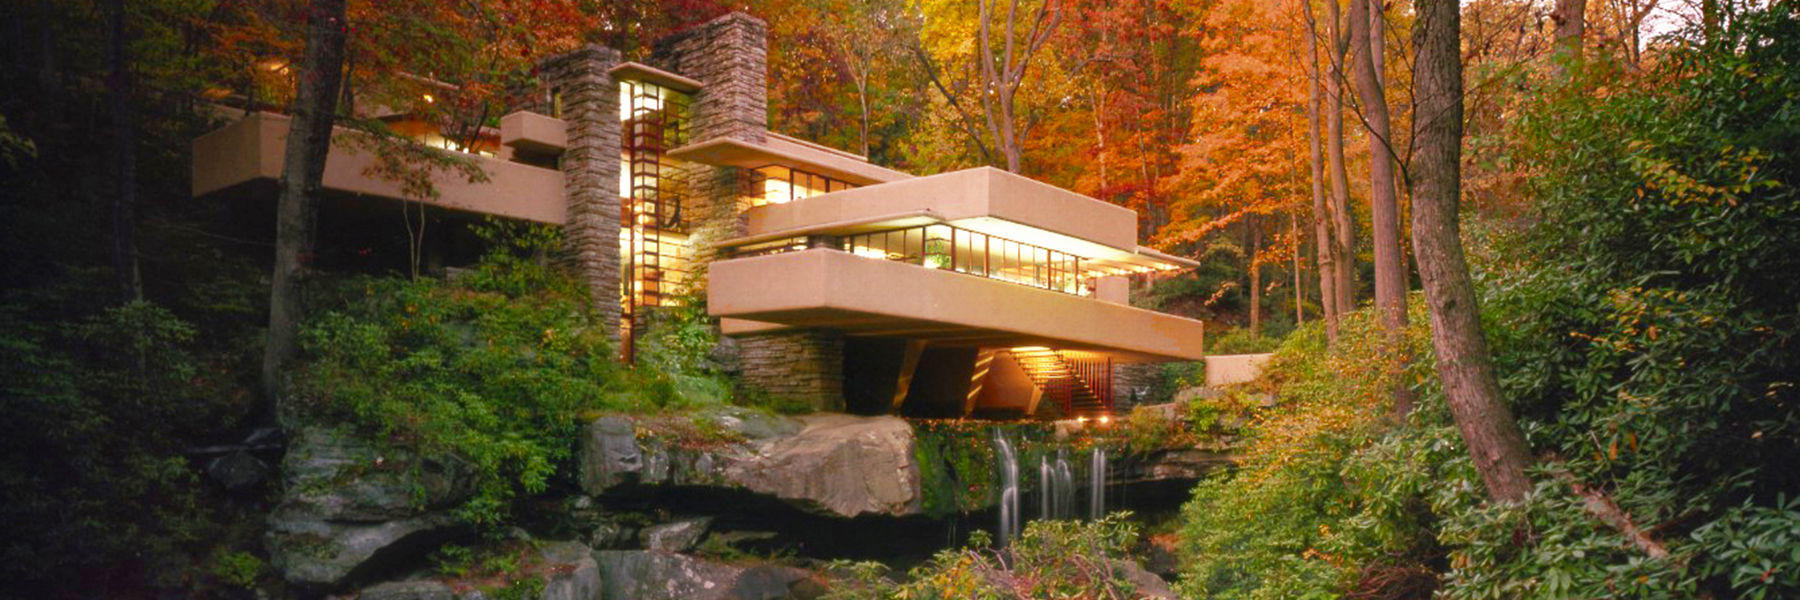 Laurel Highlands Pa Frank Lloyd Wright Fallingwater Tours